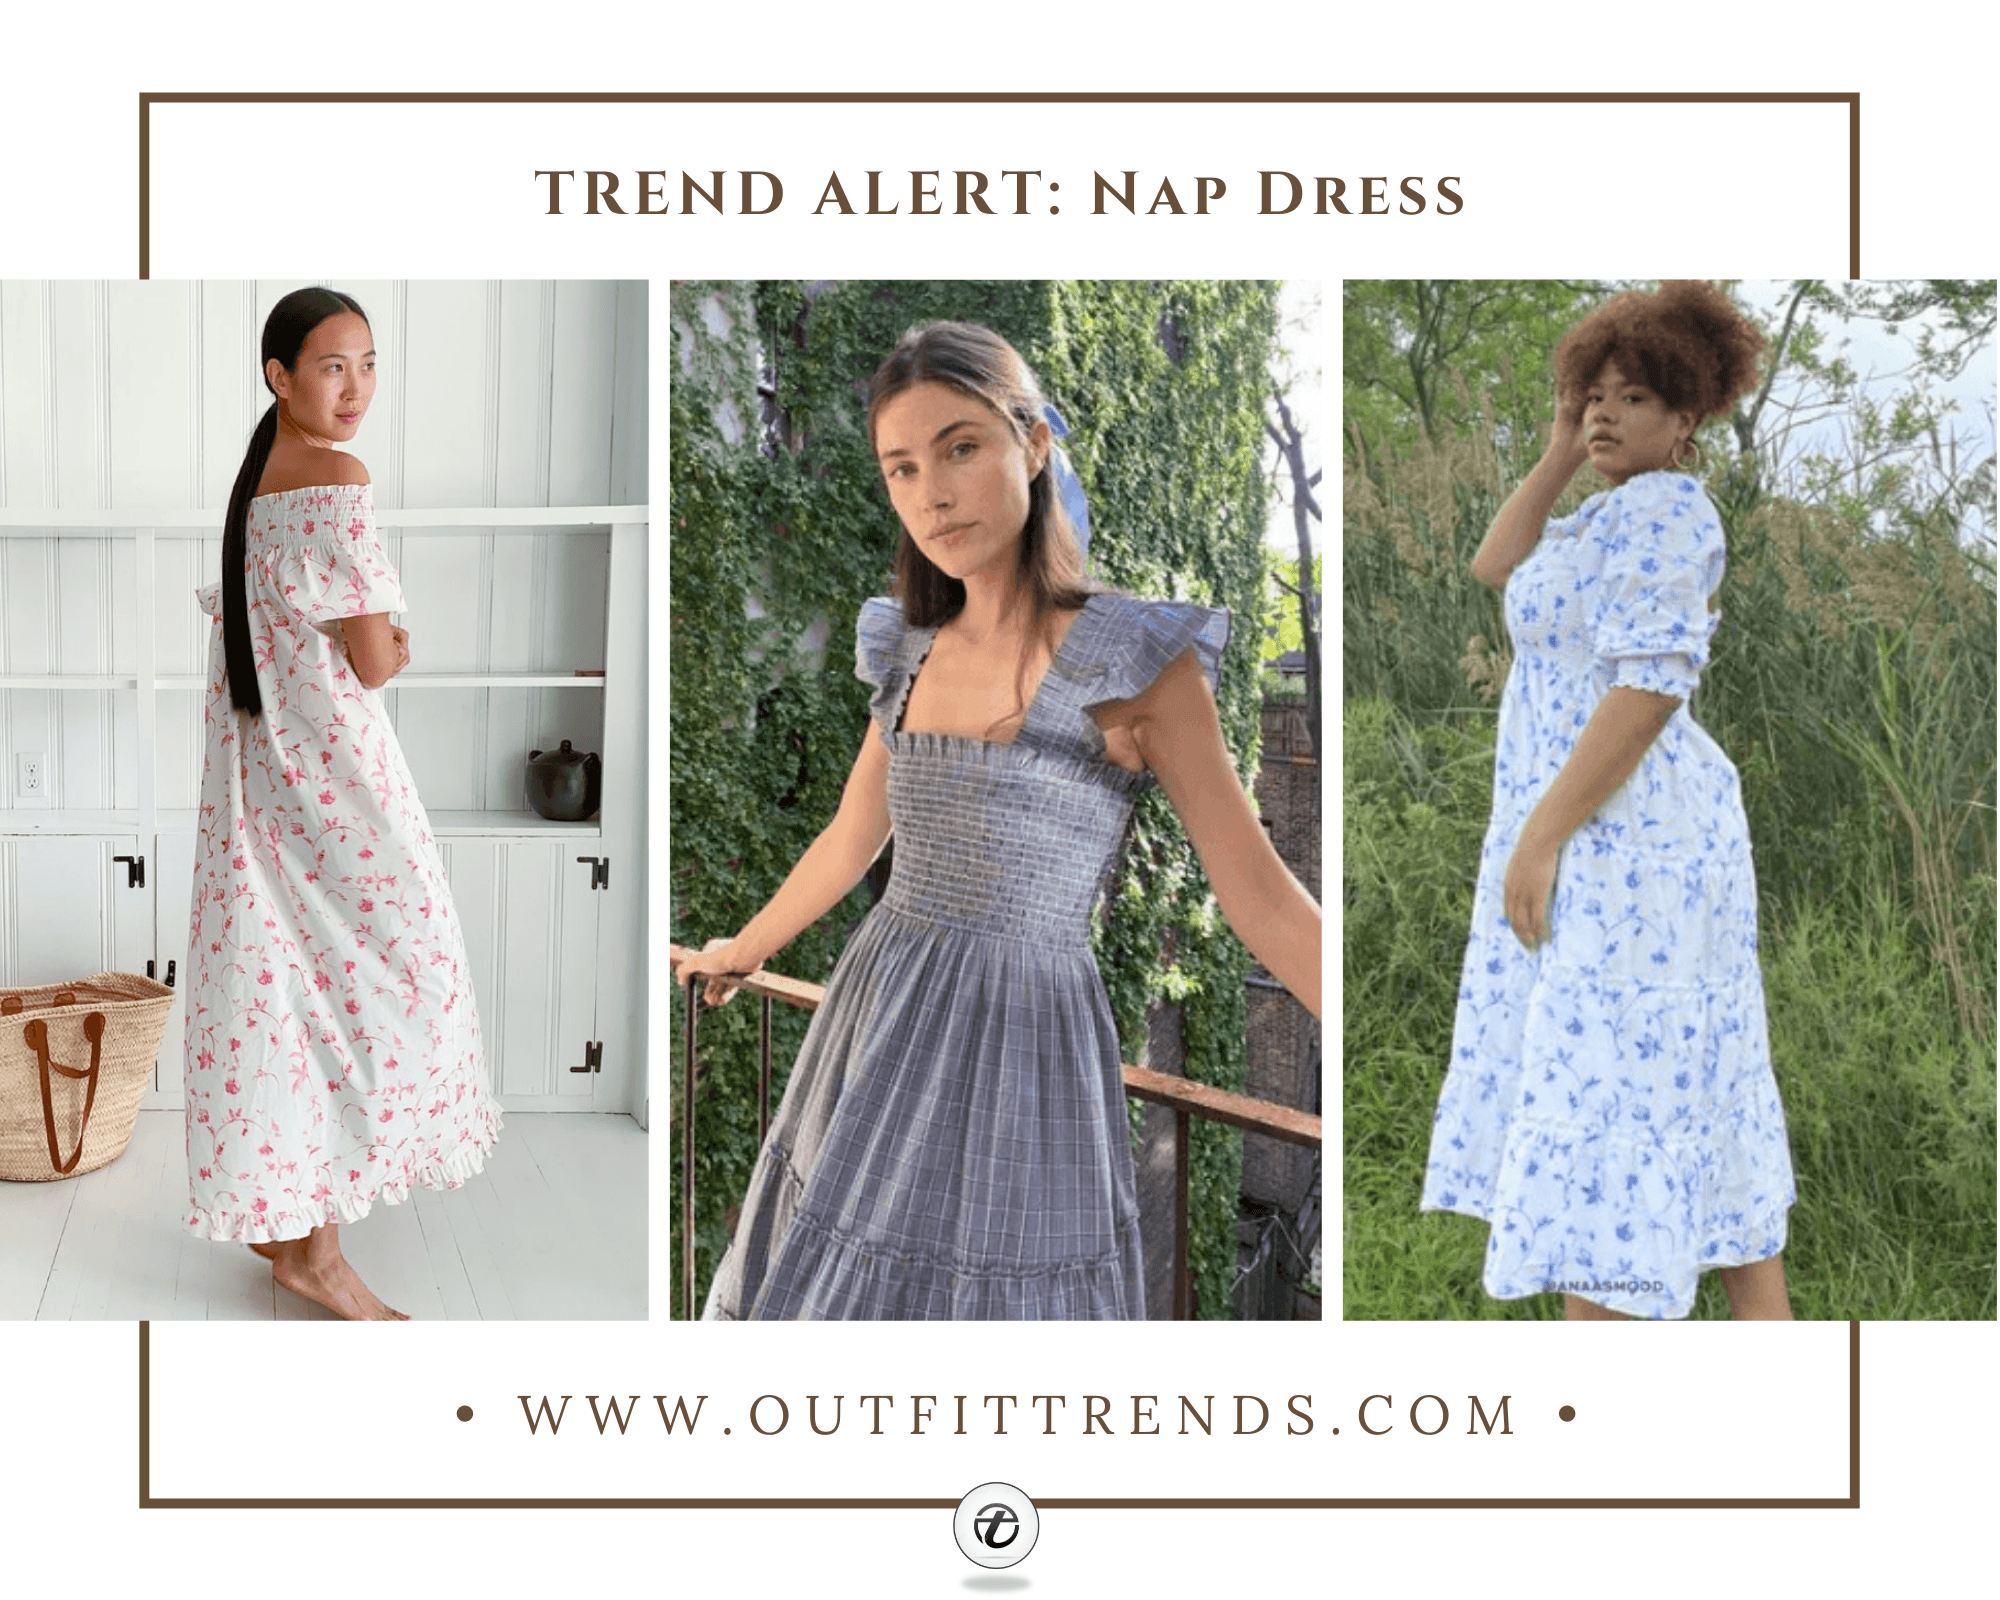 The Ultimate Nap Dress Guide You've Been Waiting For